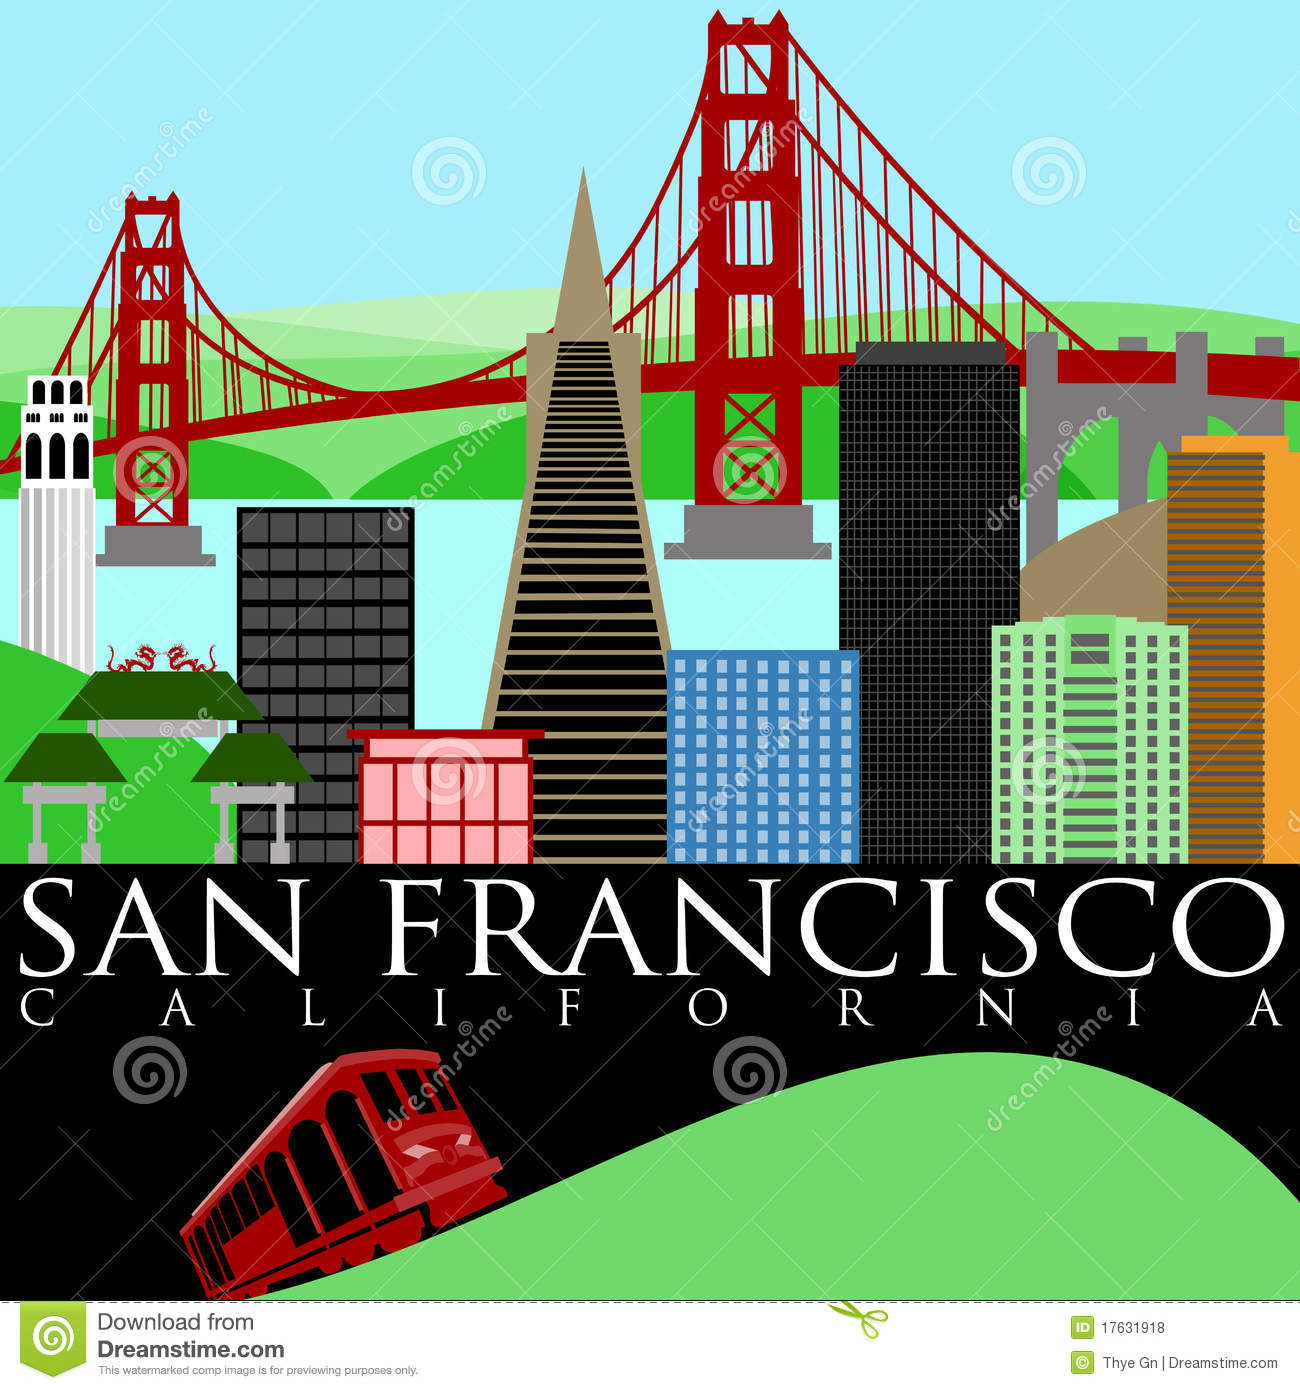 Free san francisco clipart 5 » Clipart Station.